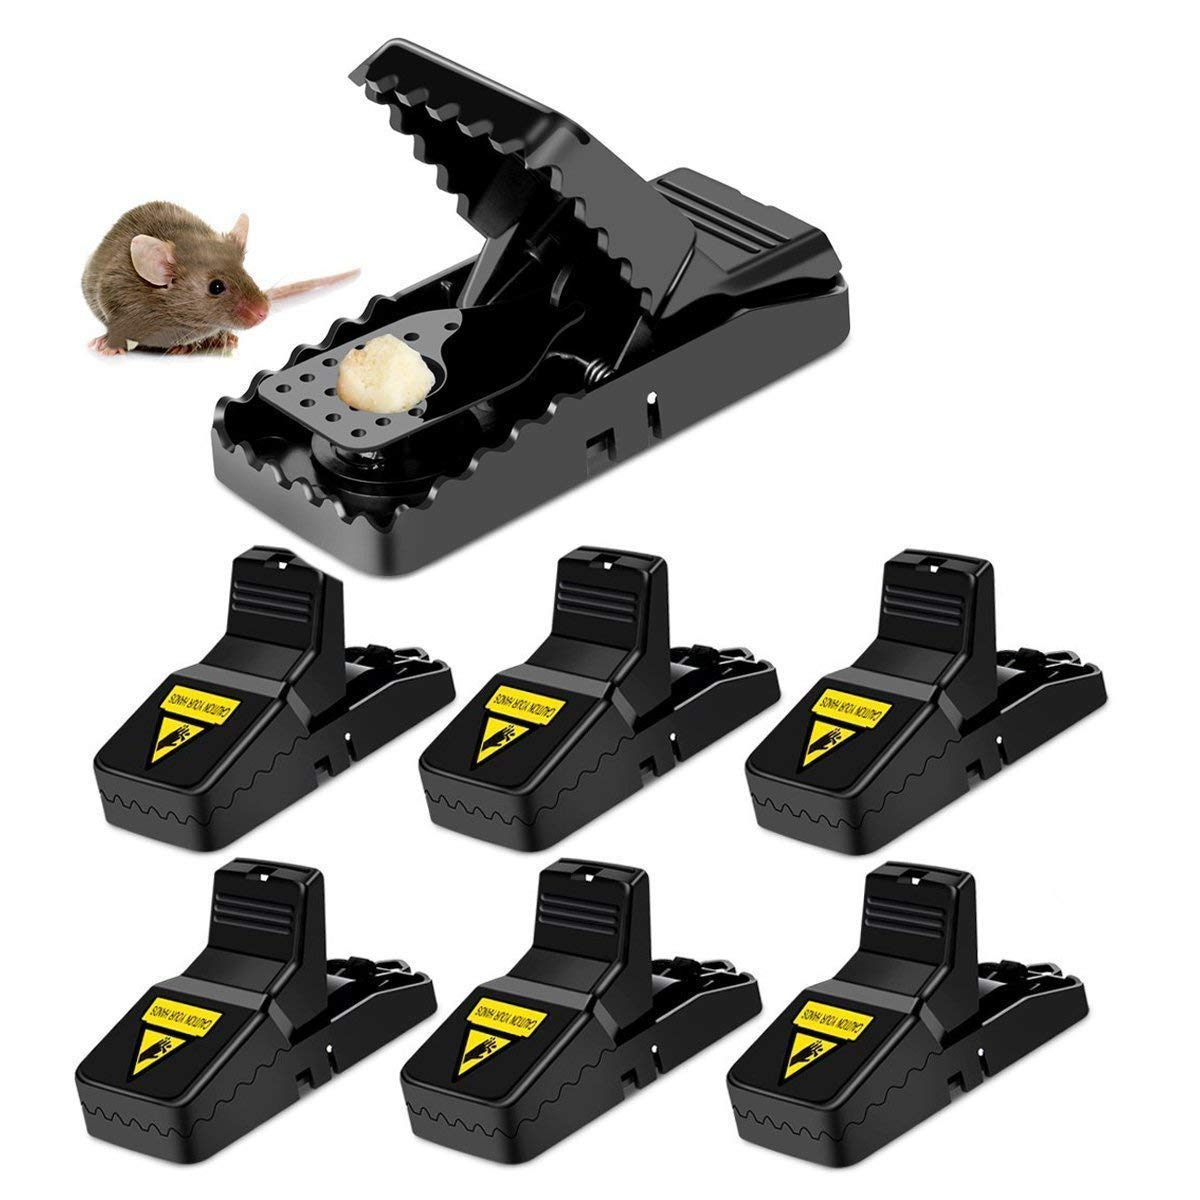 Amabana Mouse Trap,Rat Mice Traps Snap Work Power Rodent Quick Killer 100% Mouse Catcher Cleaning Brush Safe Family Pet,Qucik & Effective & Sanitary(6 Pack)